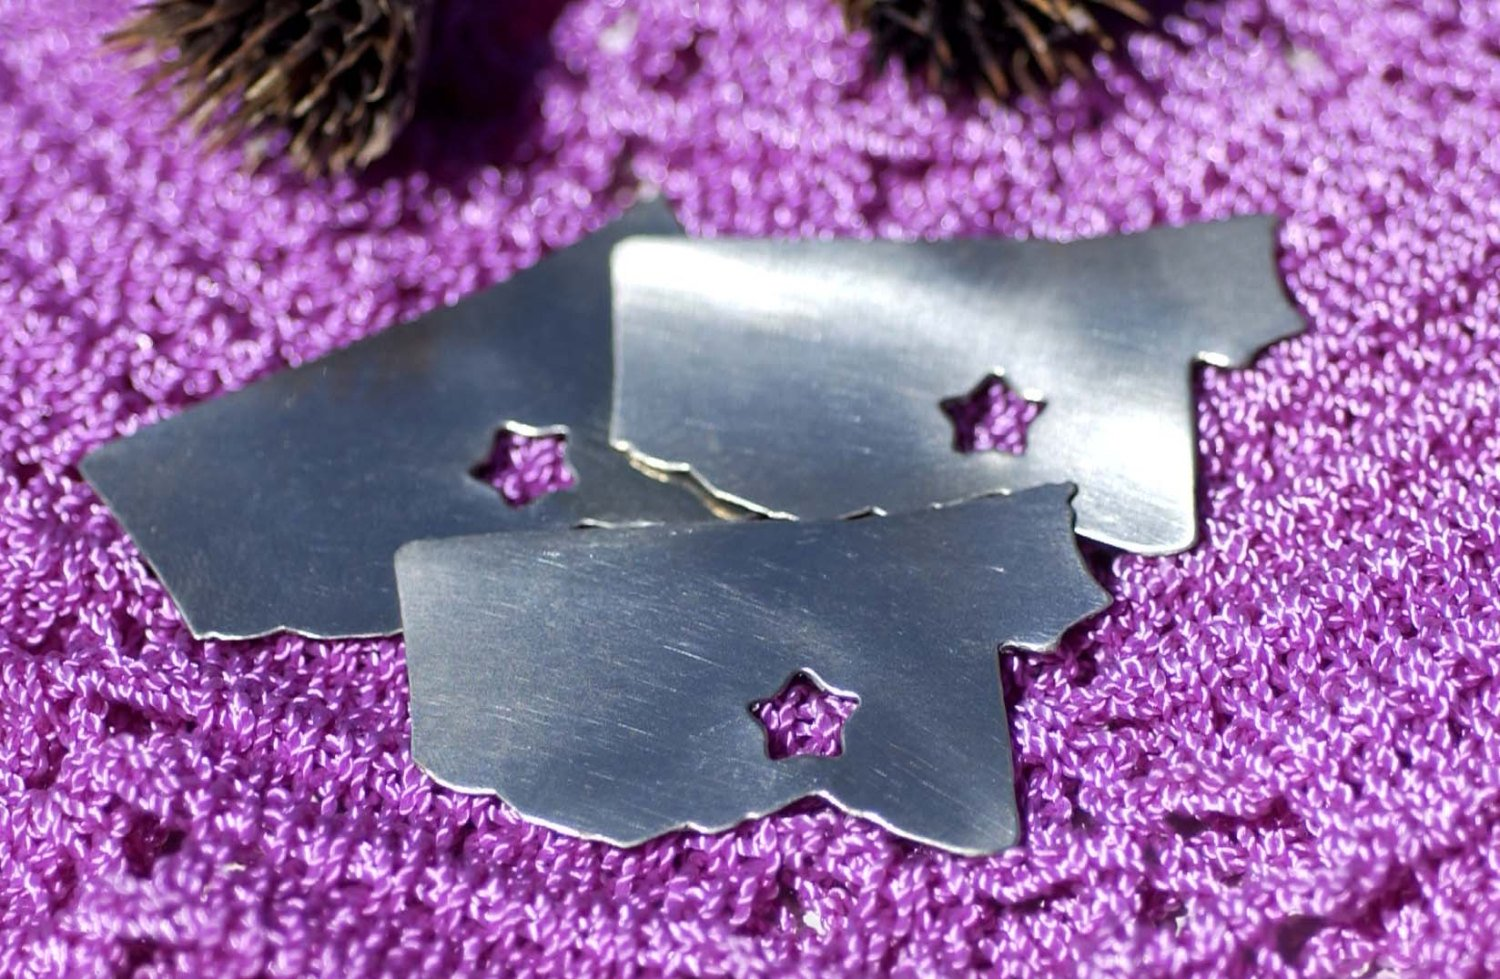 Mississippi State 42mm x 24mm with Star Blanks Cutout for Enameling Metalworking Stamping Texturing 100% Copper Blank